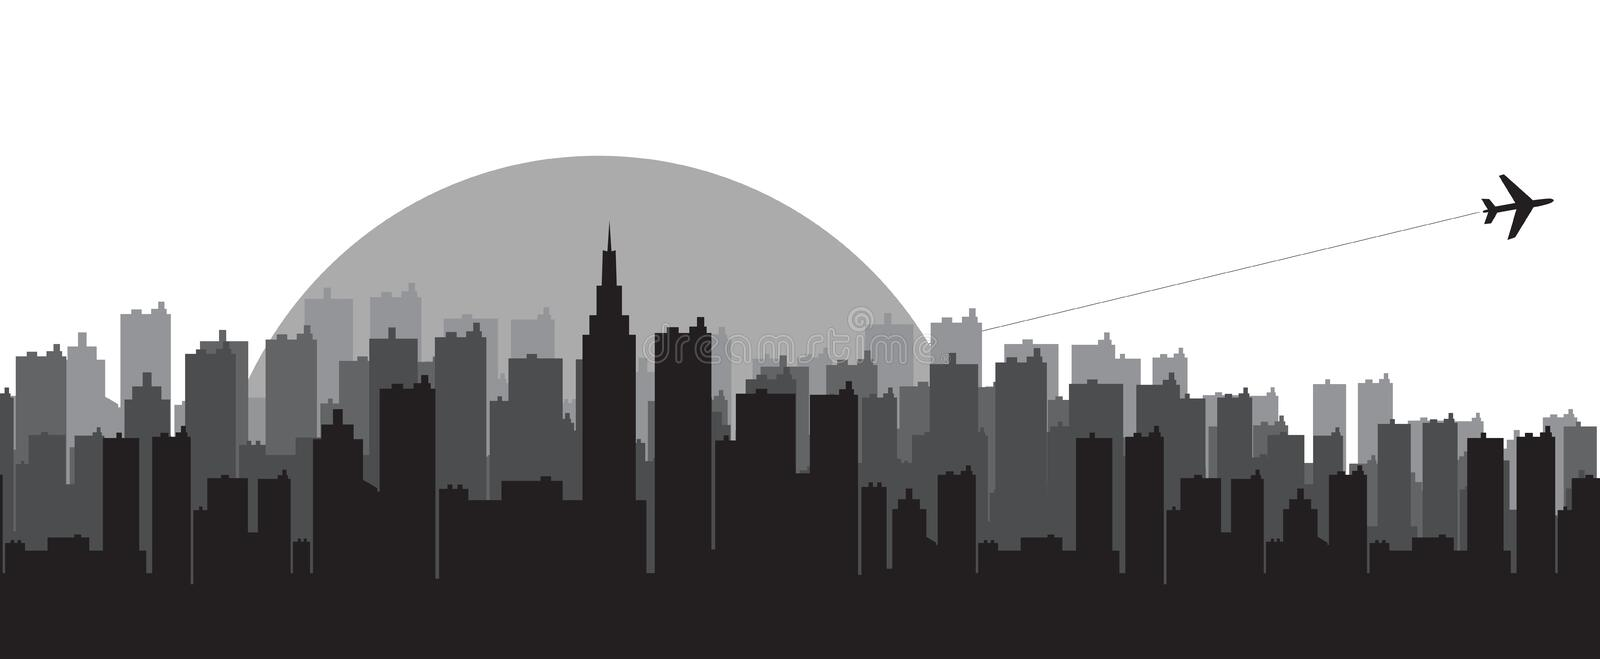 City skyline silhouettes royalty free illustration